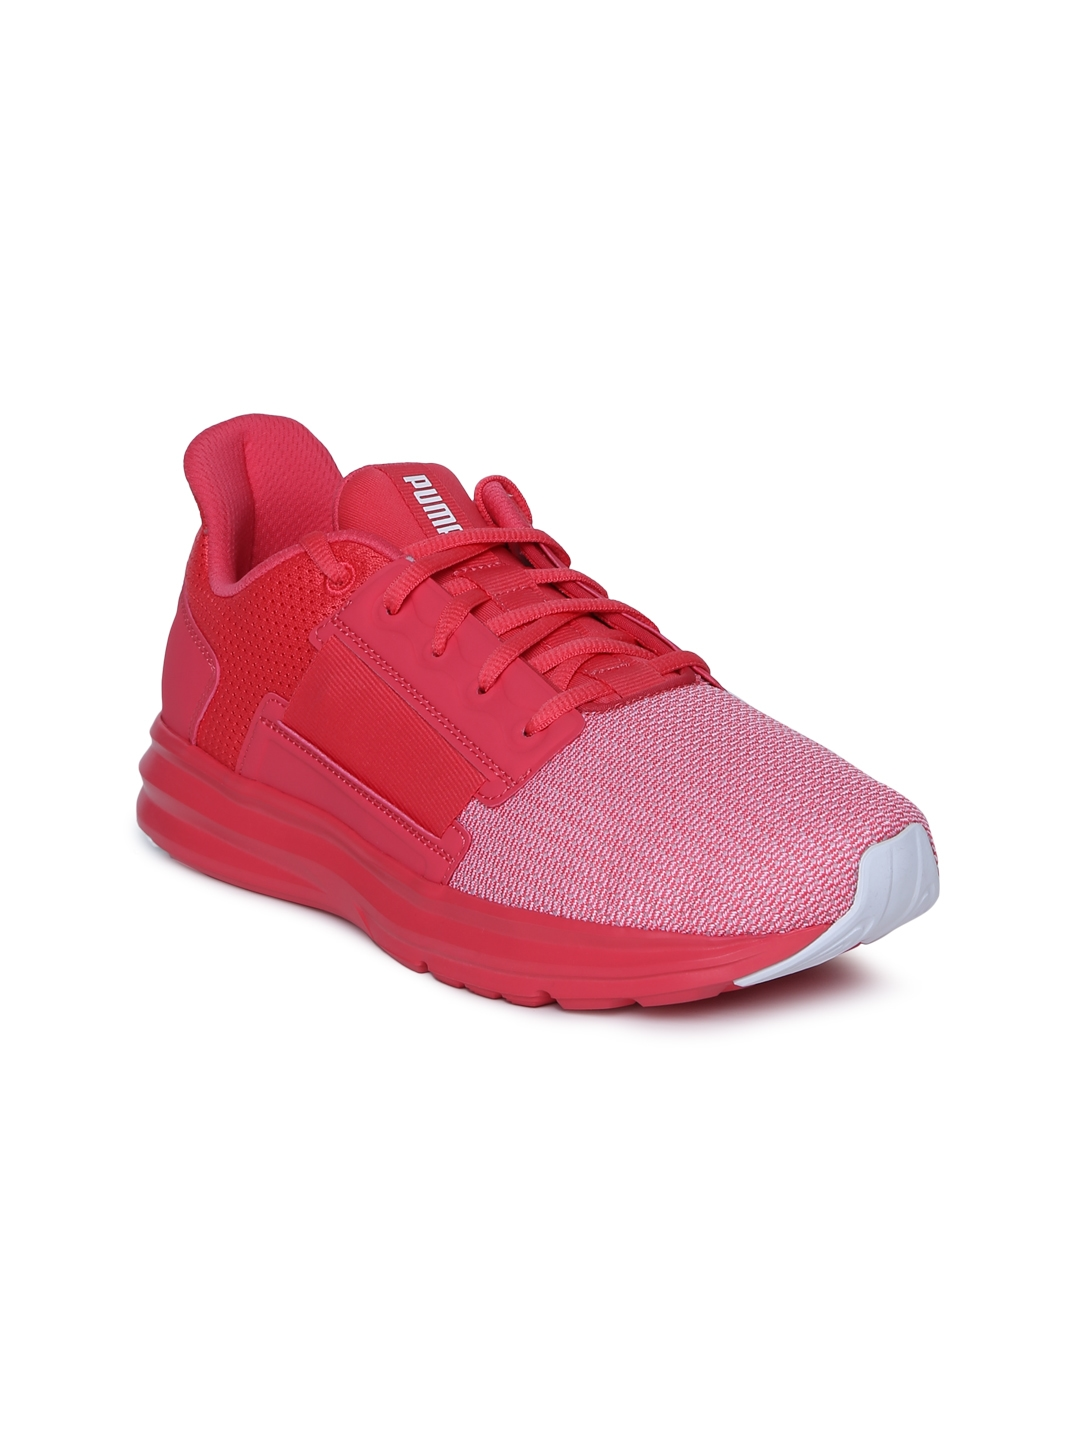 bca8d58b0f5 Buy Puma Women Pink Enzo Street Wn S Gym Shoes - Sports Shoes for ...